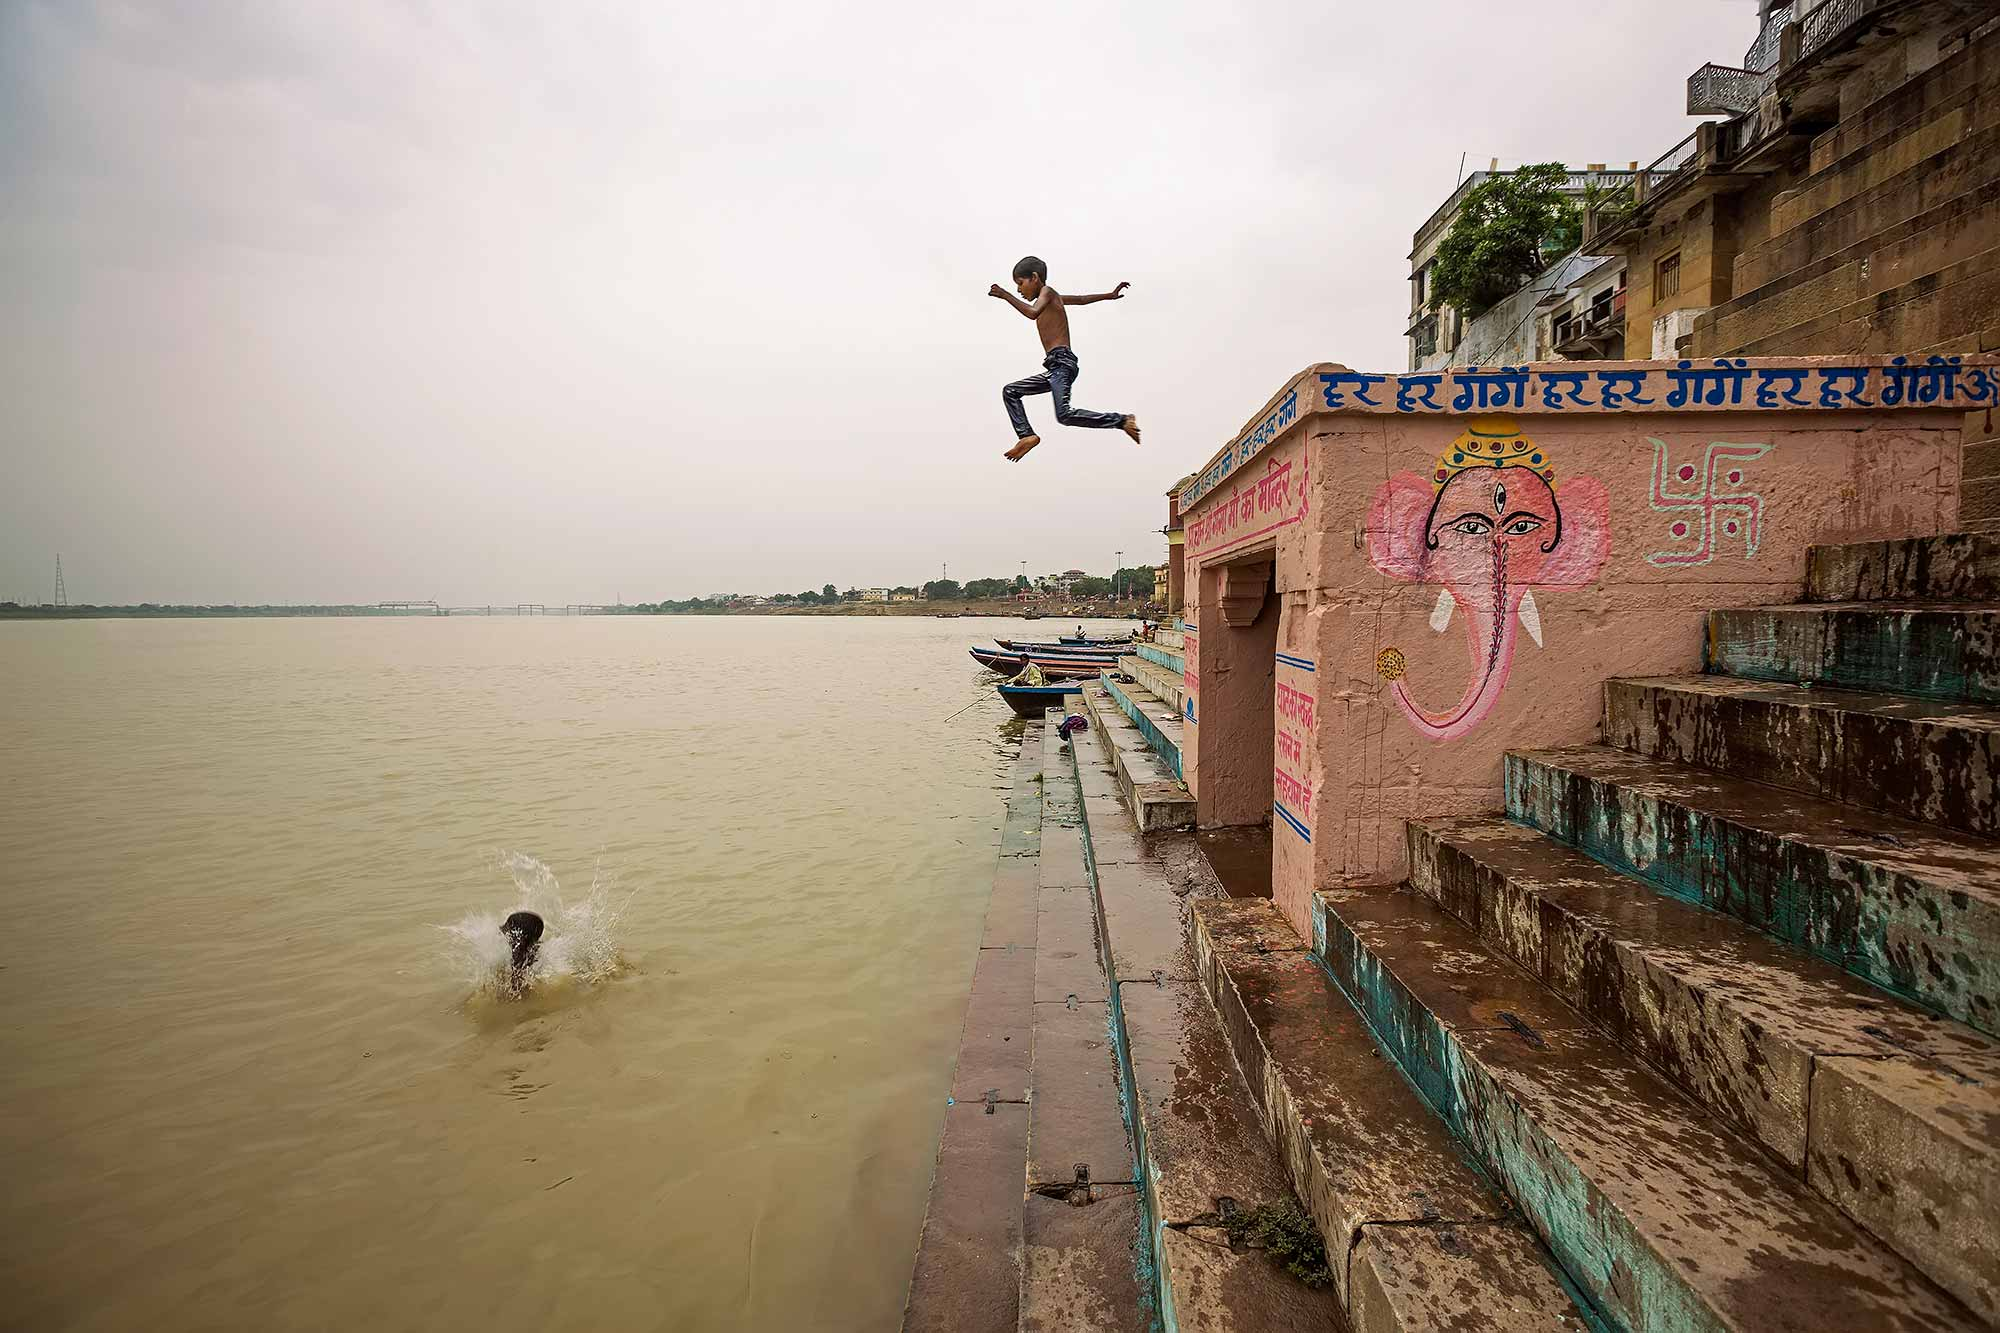 kids-jumping-into-ganges-ghats-varanasi-india